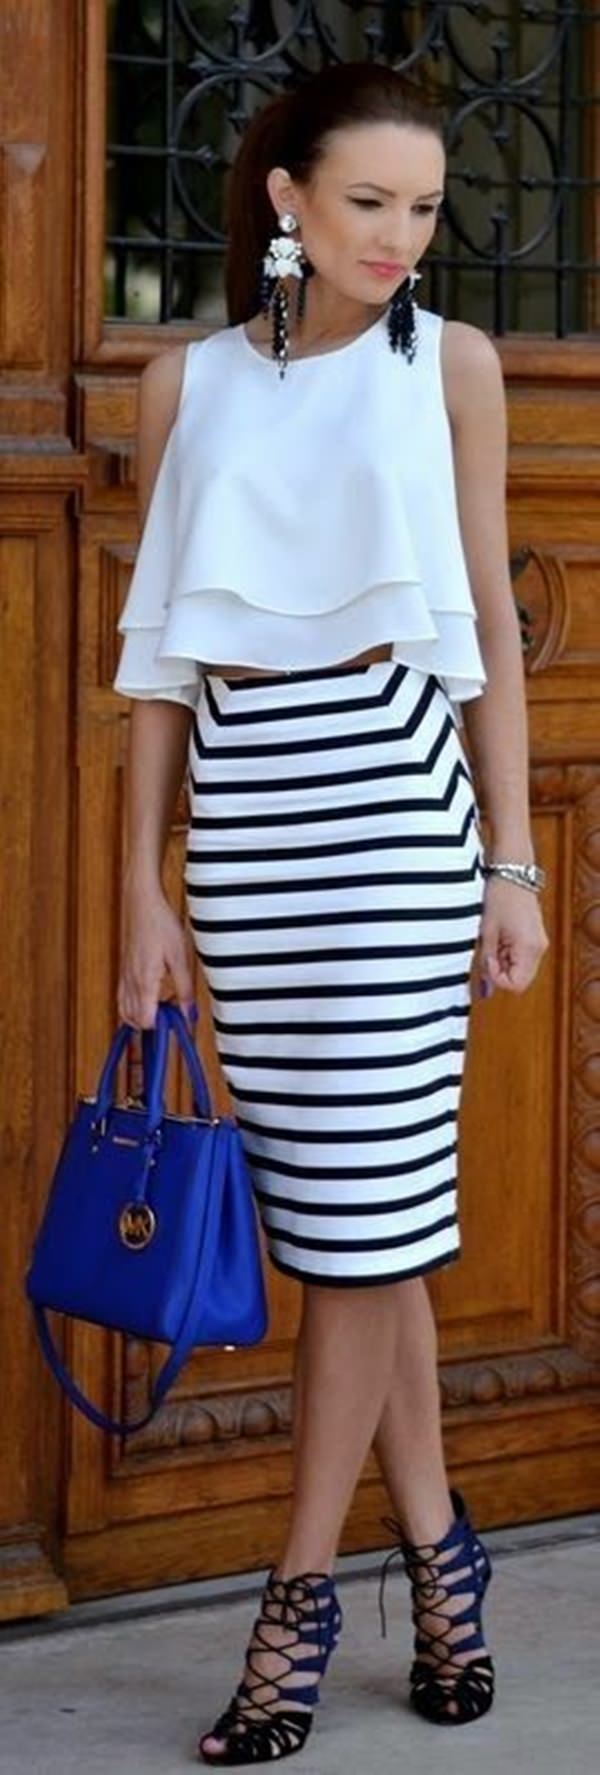 pencil skirt outfits 34